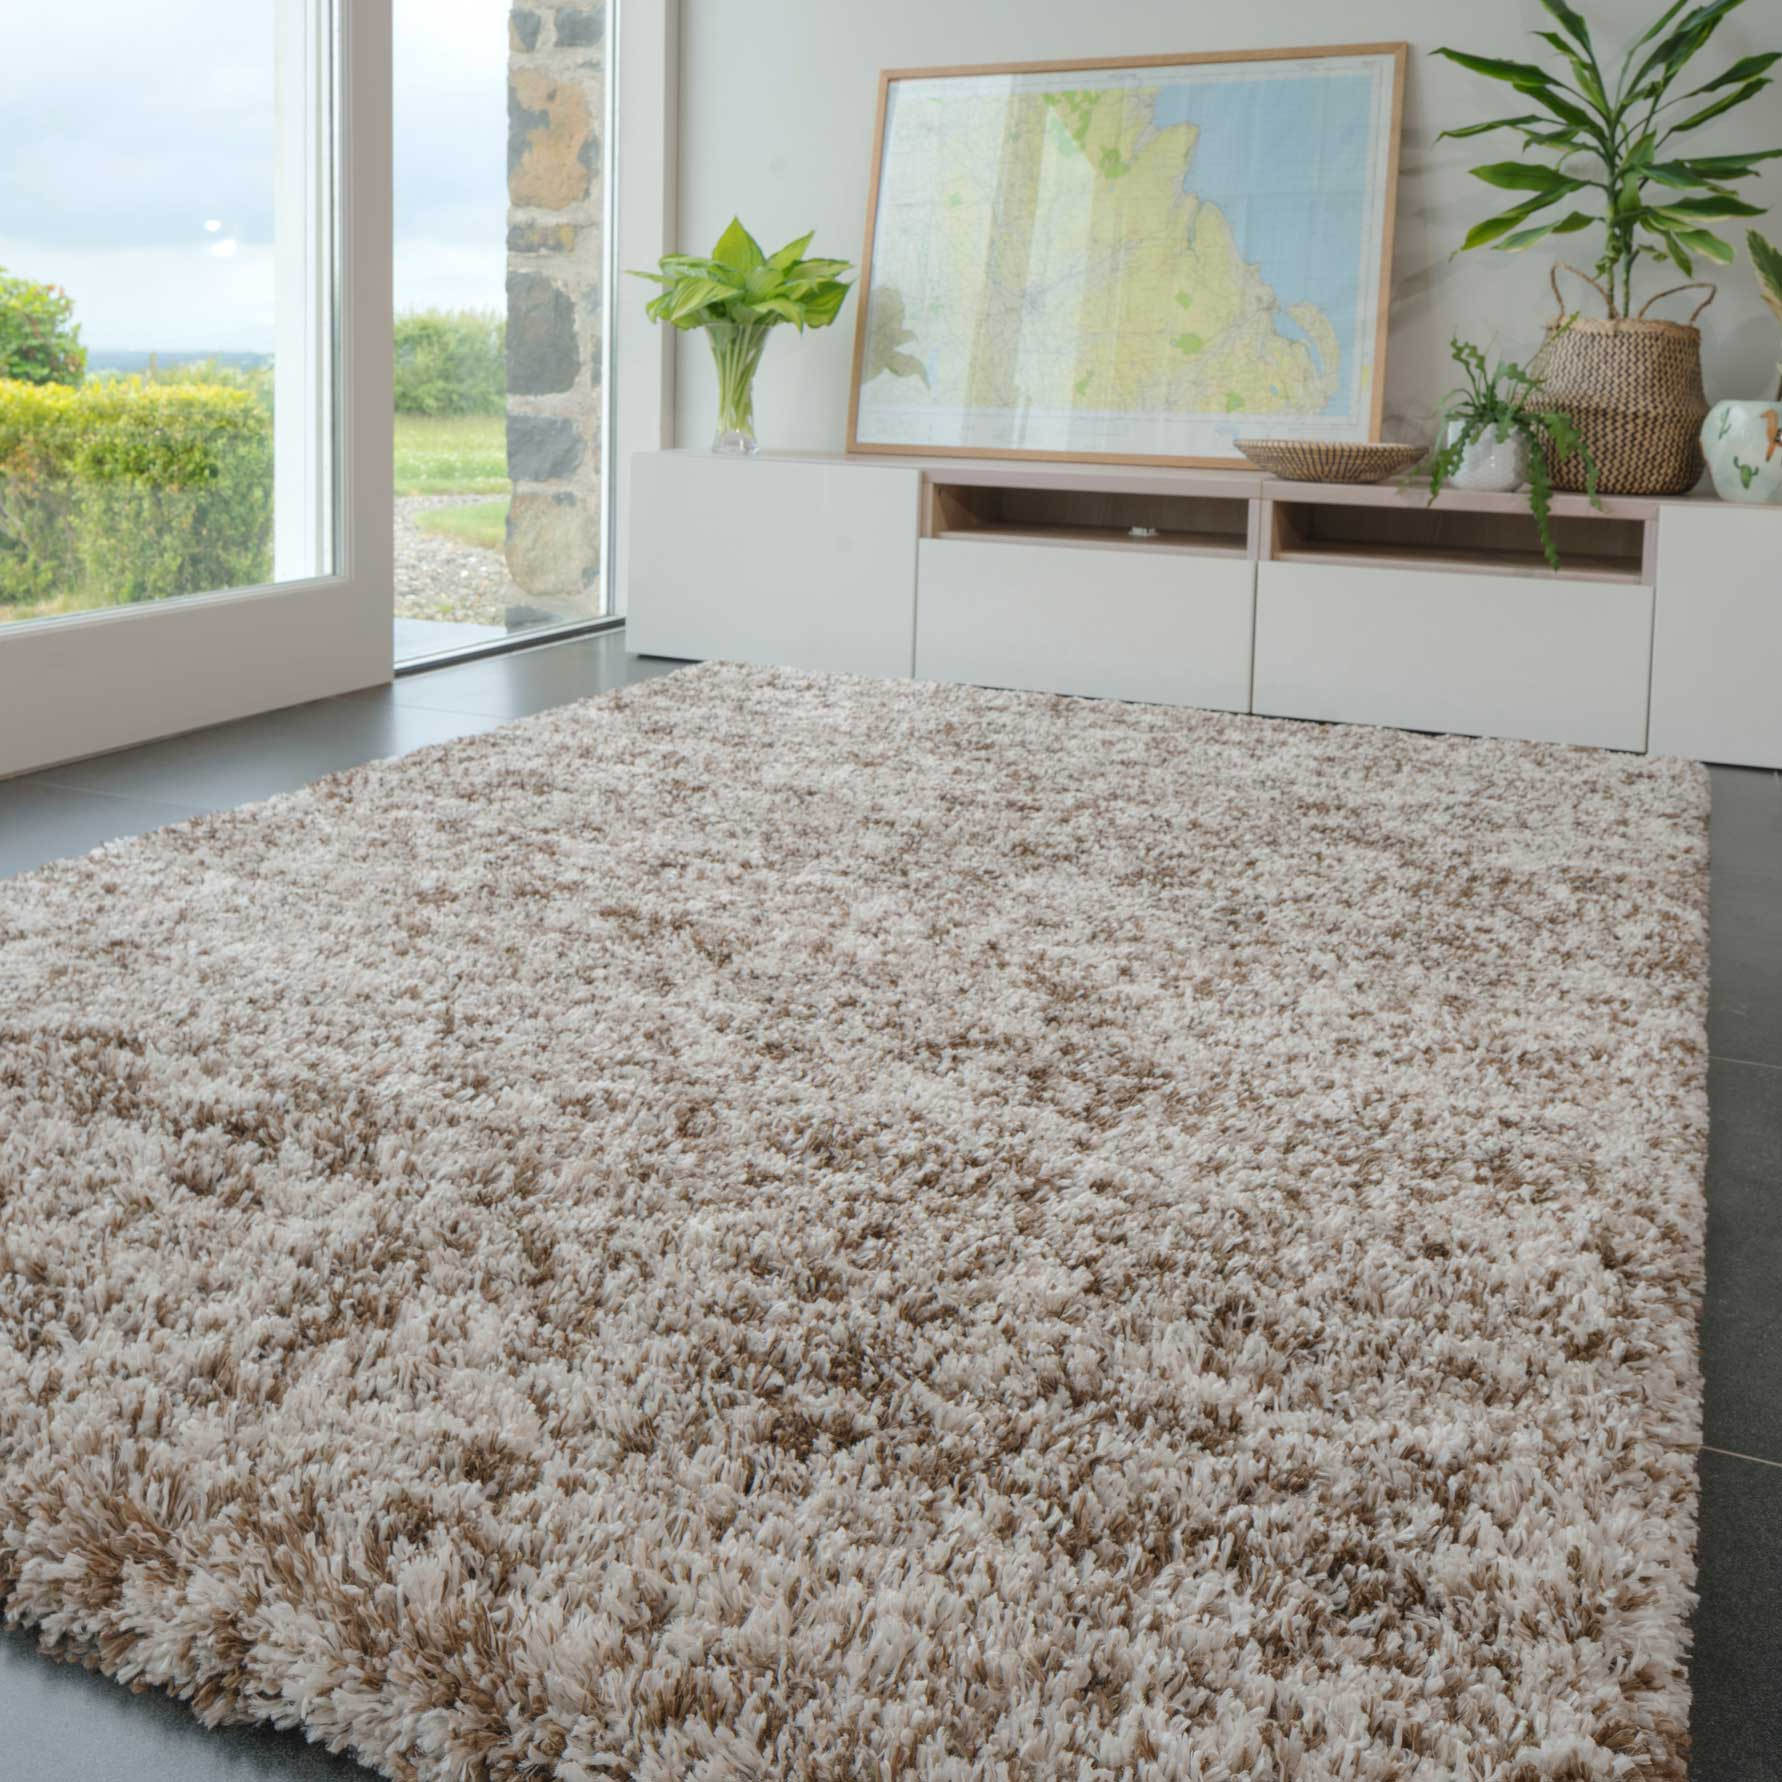 Soft Mottled Brown Shaggy Area Rug | Camberley